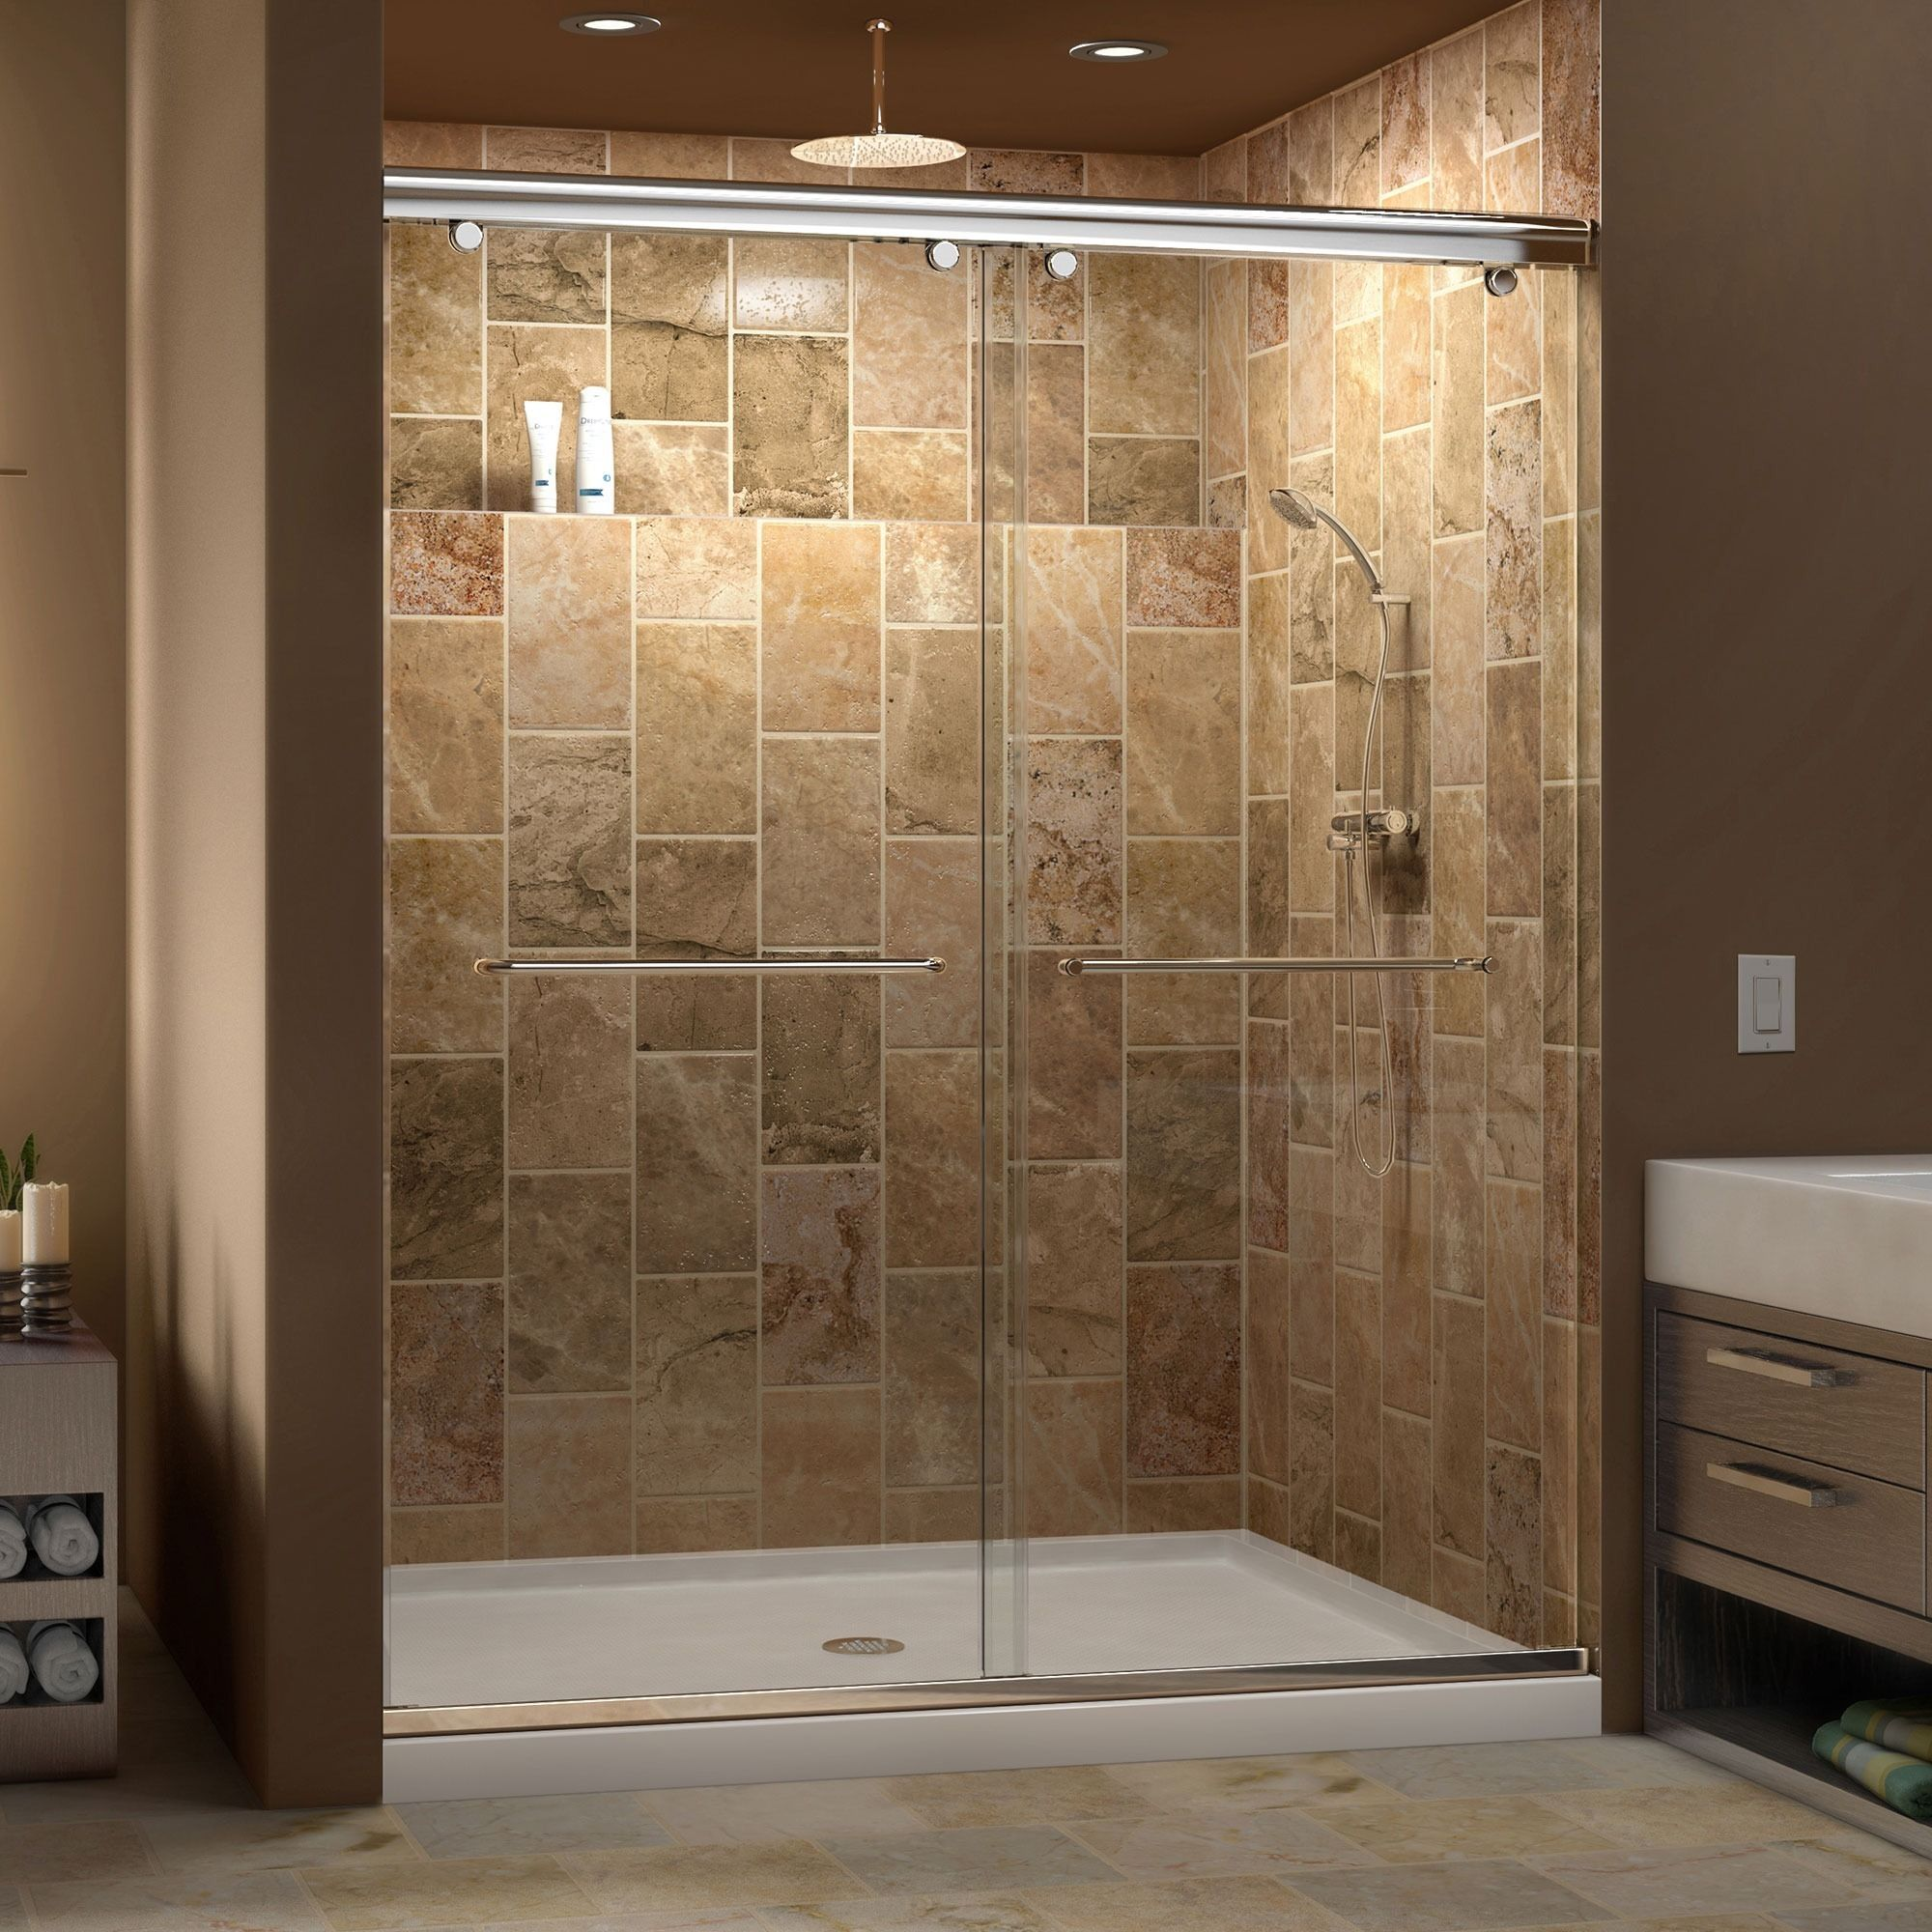 Tiling Bathroom Door Threshold dreamline charisma frameless bypass sliding shower door and